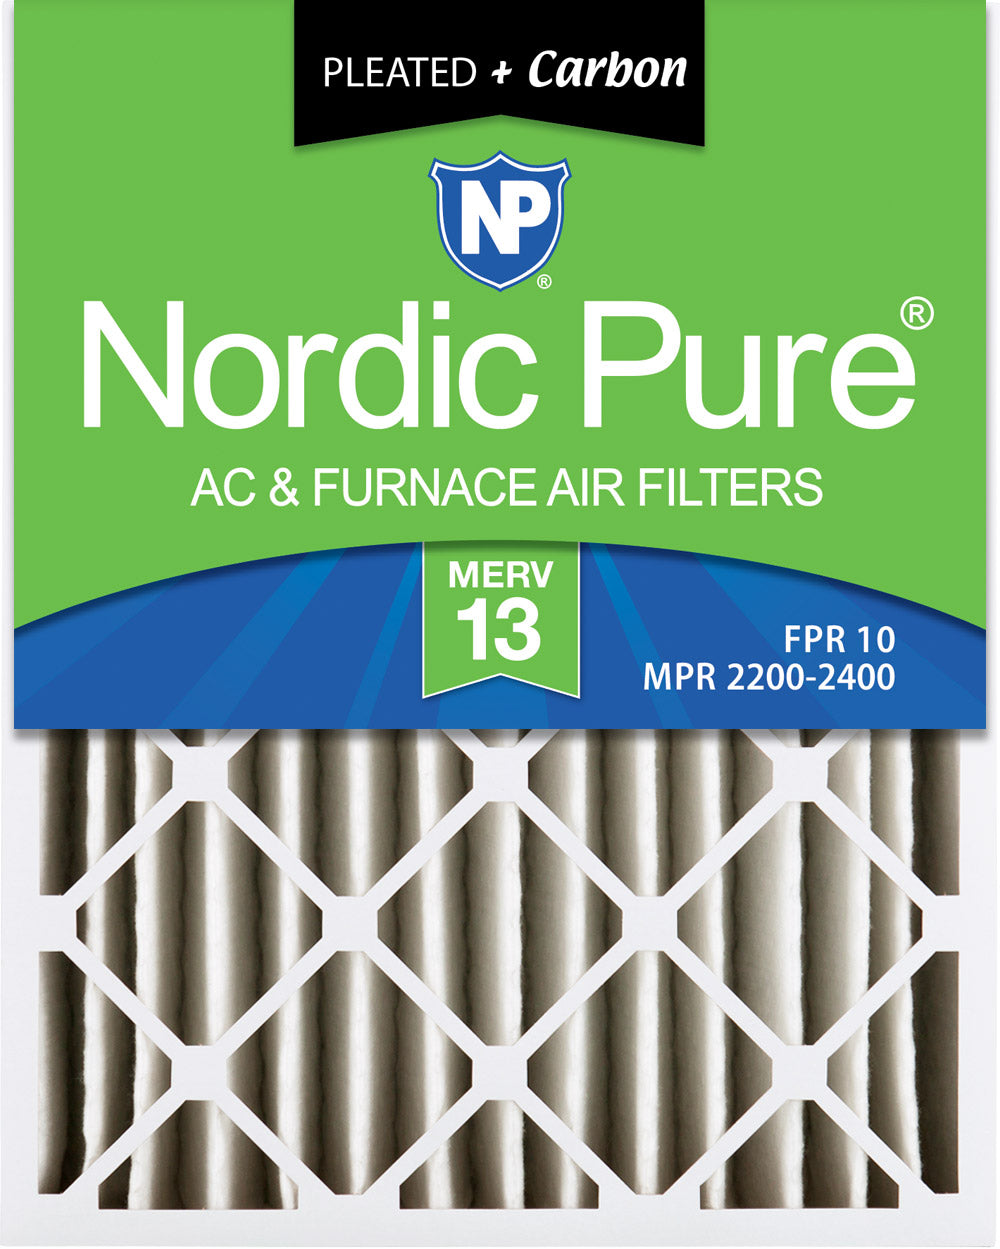 20x25x4 (3 5/8) Pleated Air Filters MERV 13 Plus Carbon 2 Pack